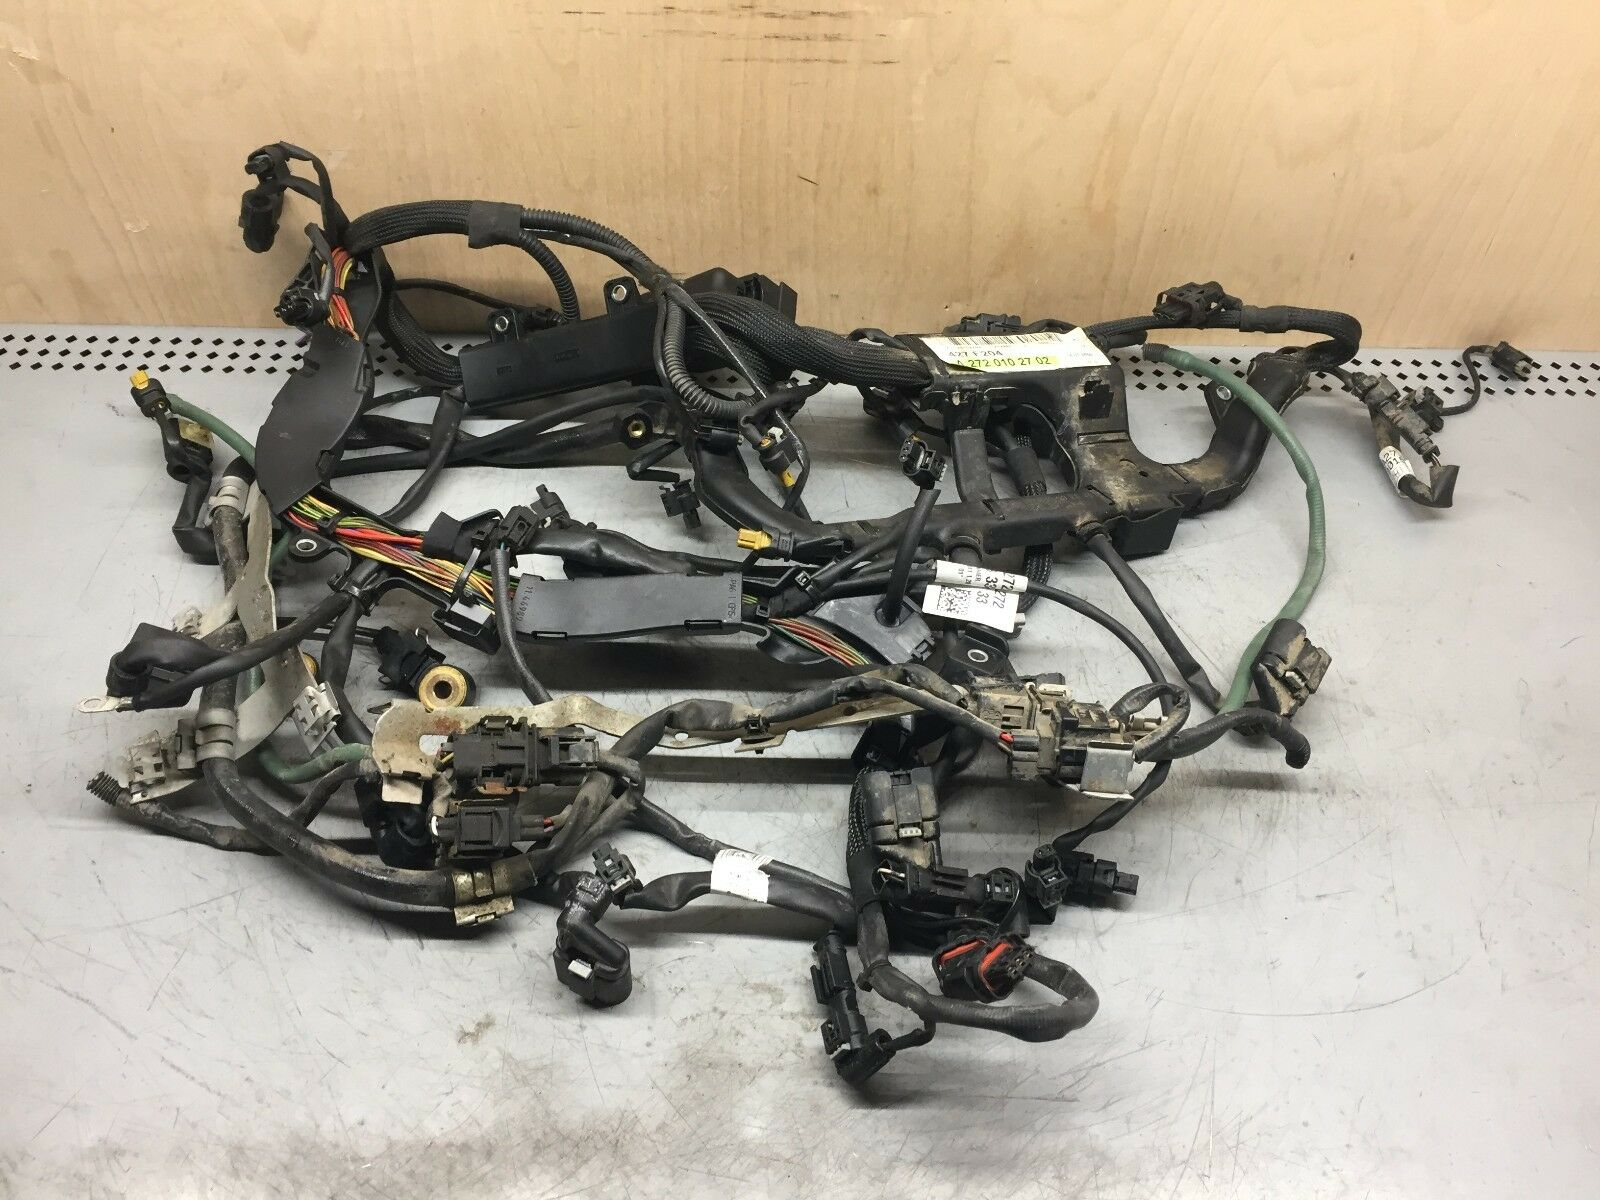 Used Mercedes Benz 300 Engines And Components For Sale C180 Wiring Harness 2009 C Class C300 W204 Rwd Engine 2720102702 Oem 27k